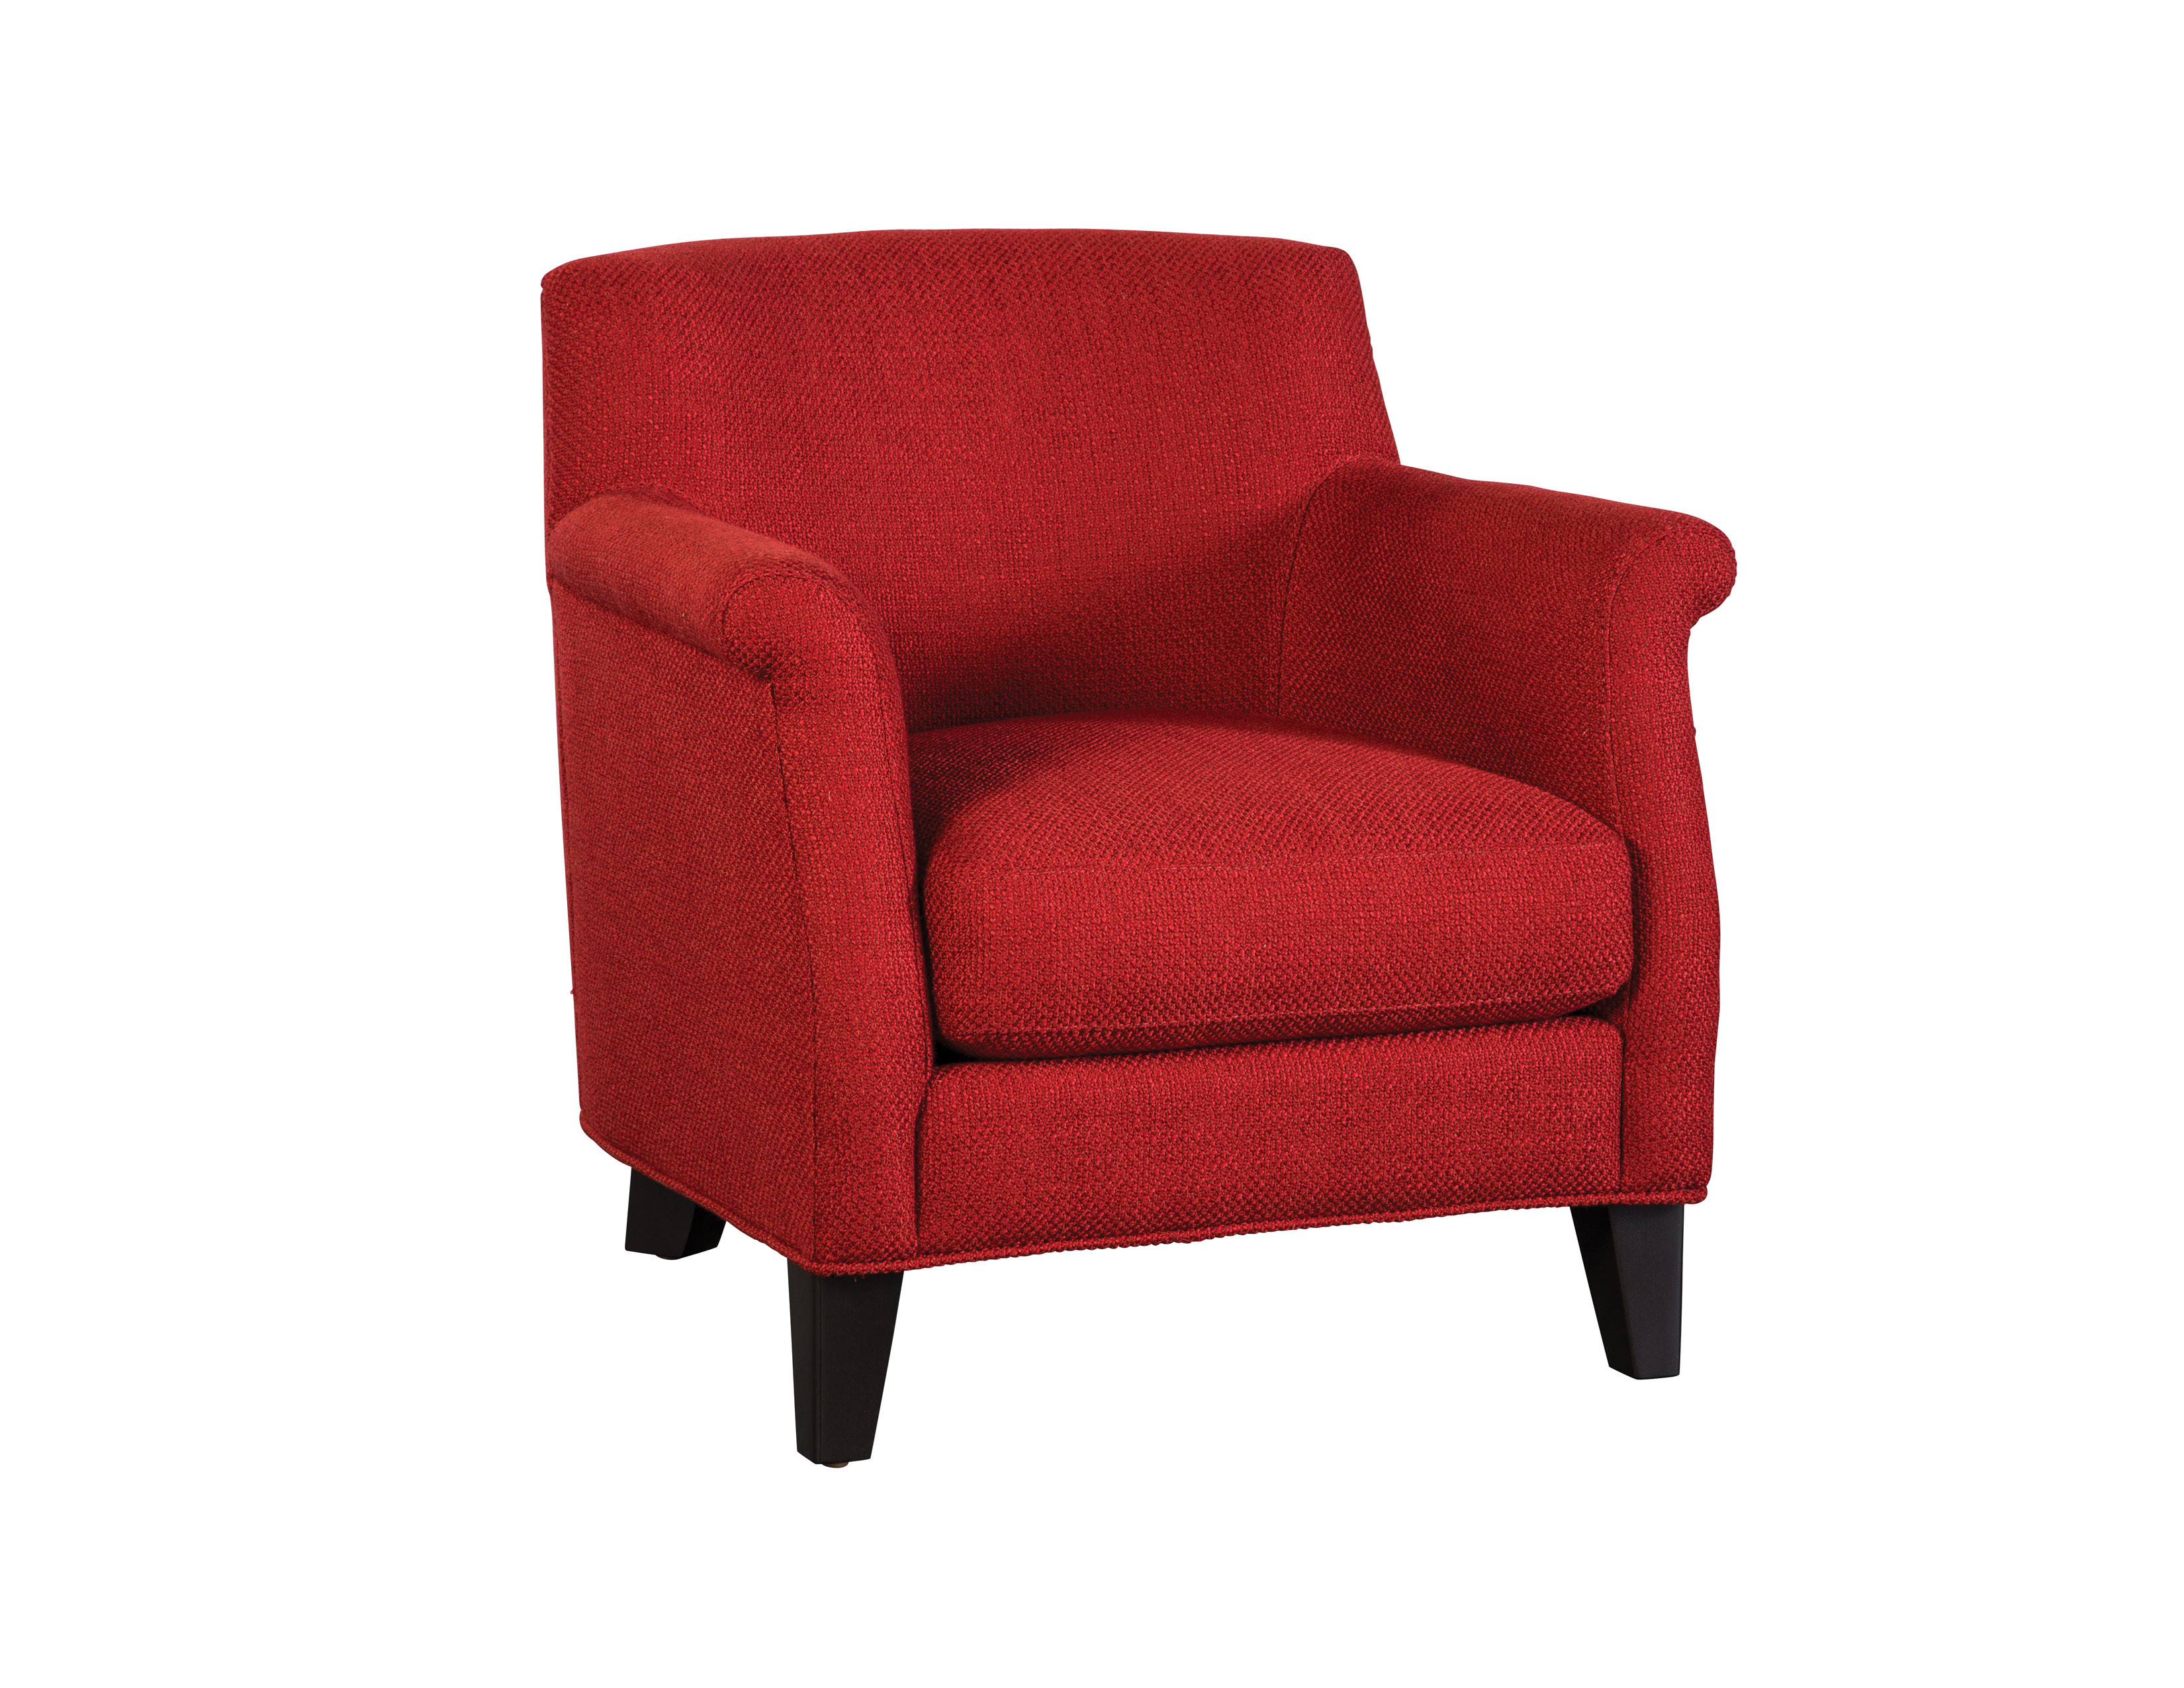 Cobi Chair Collection